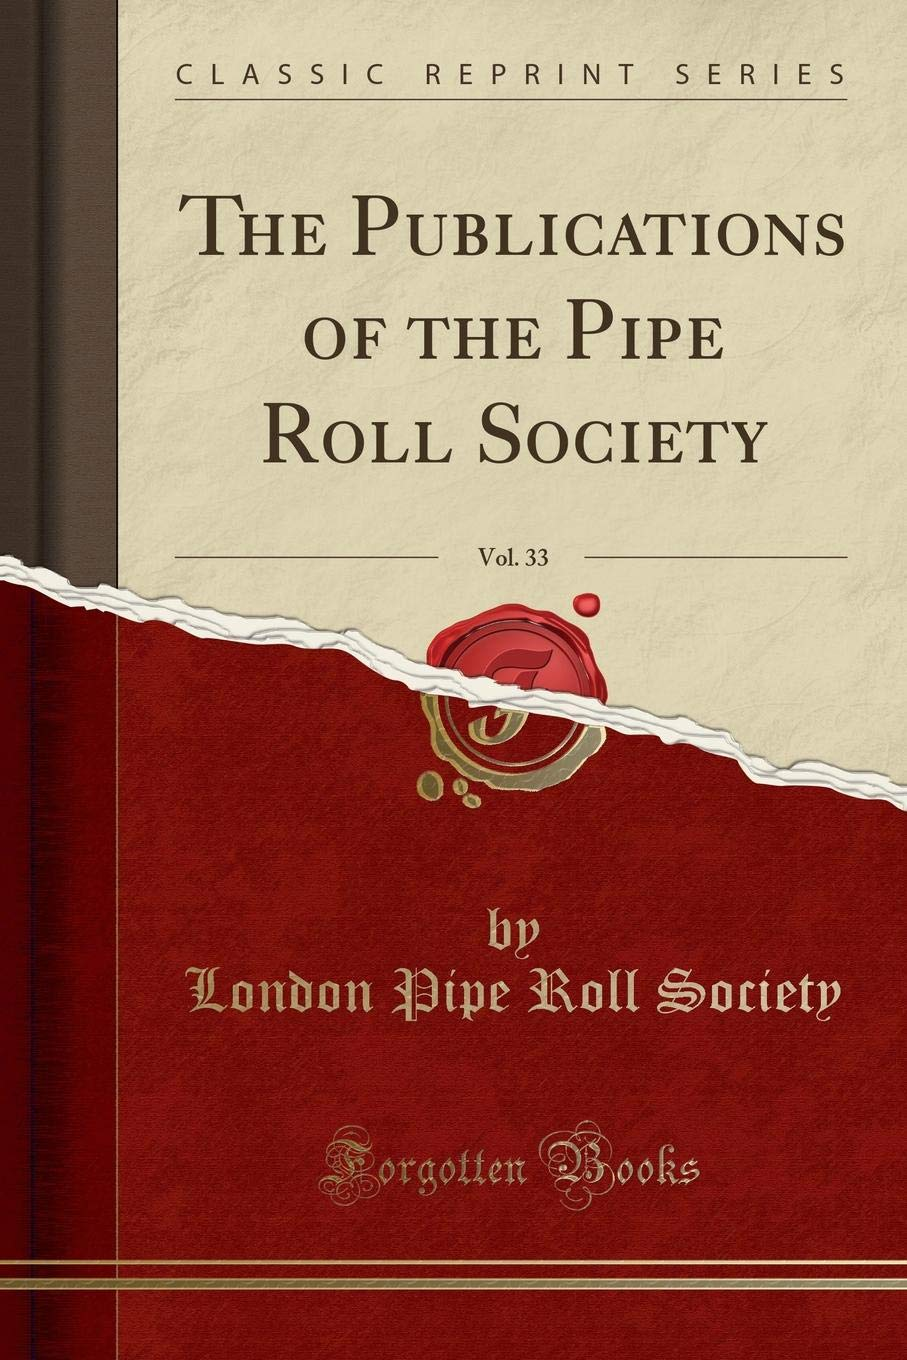 The Publications of the Pipe Roll Society, Vol. 33 (Classic Reprint) ebook